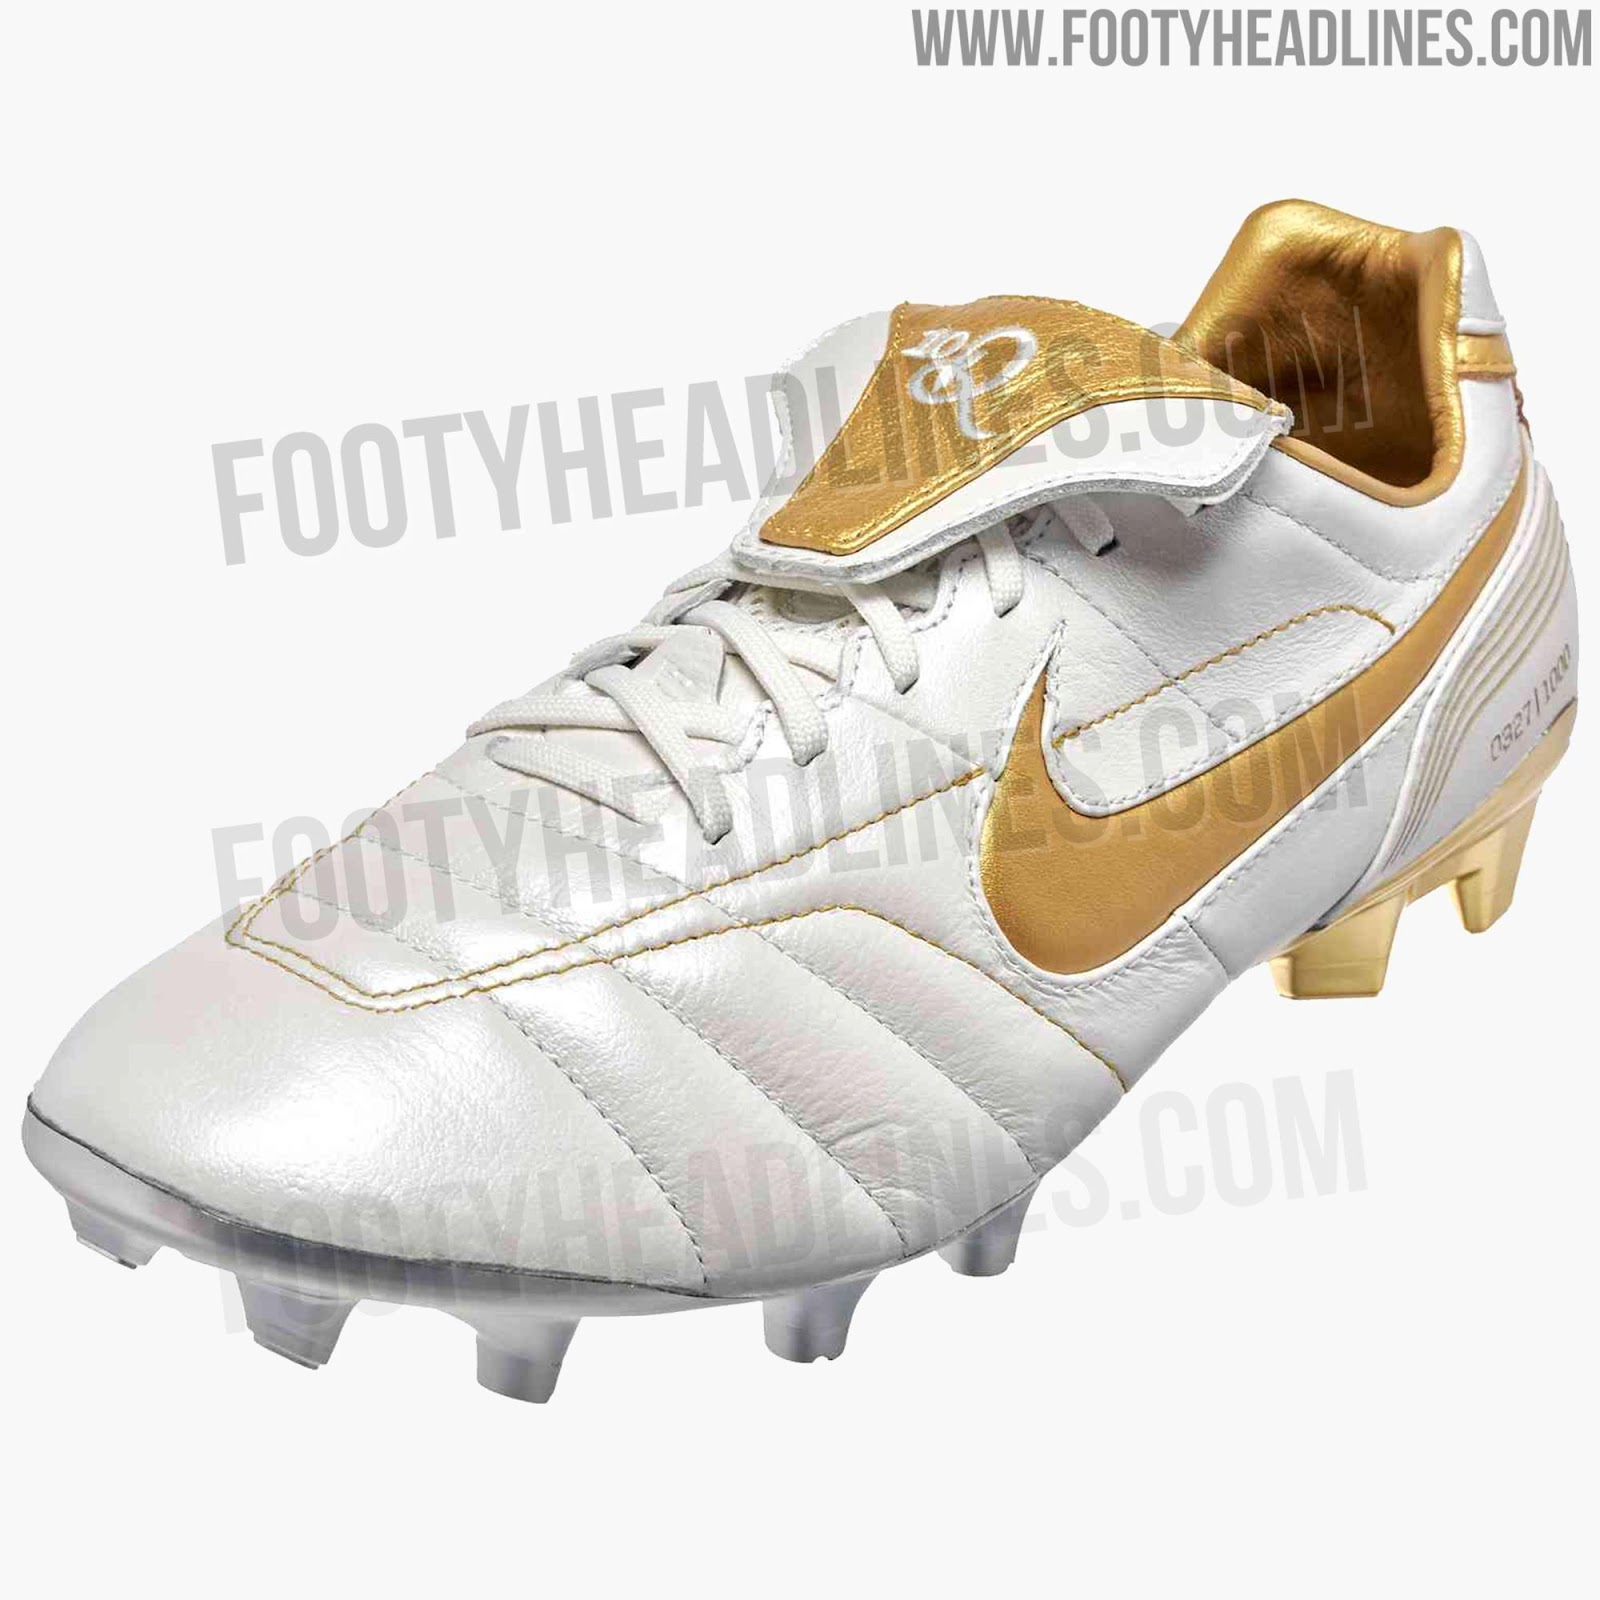 quality design fce61 252be White / Gold Nike Tiempo Legend Ronaldinho 2018 Boots Leaked ...